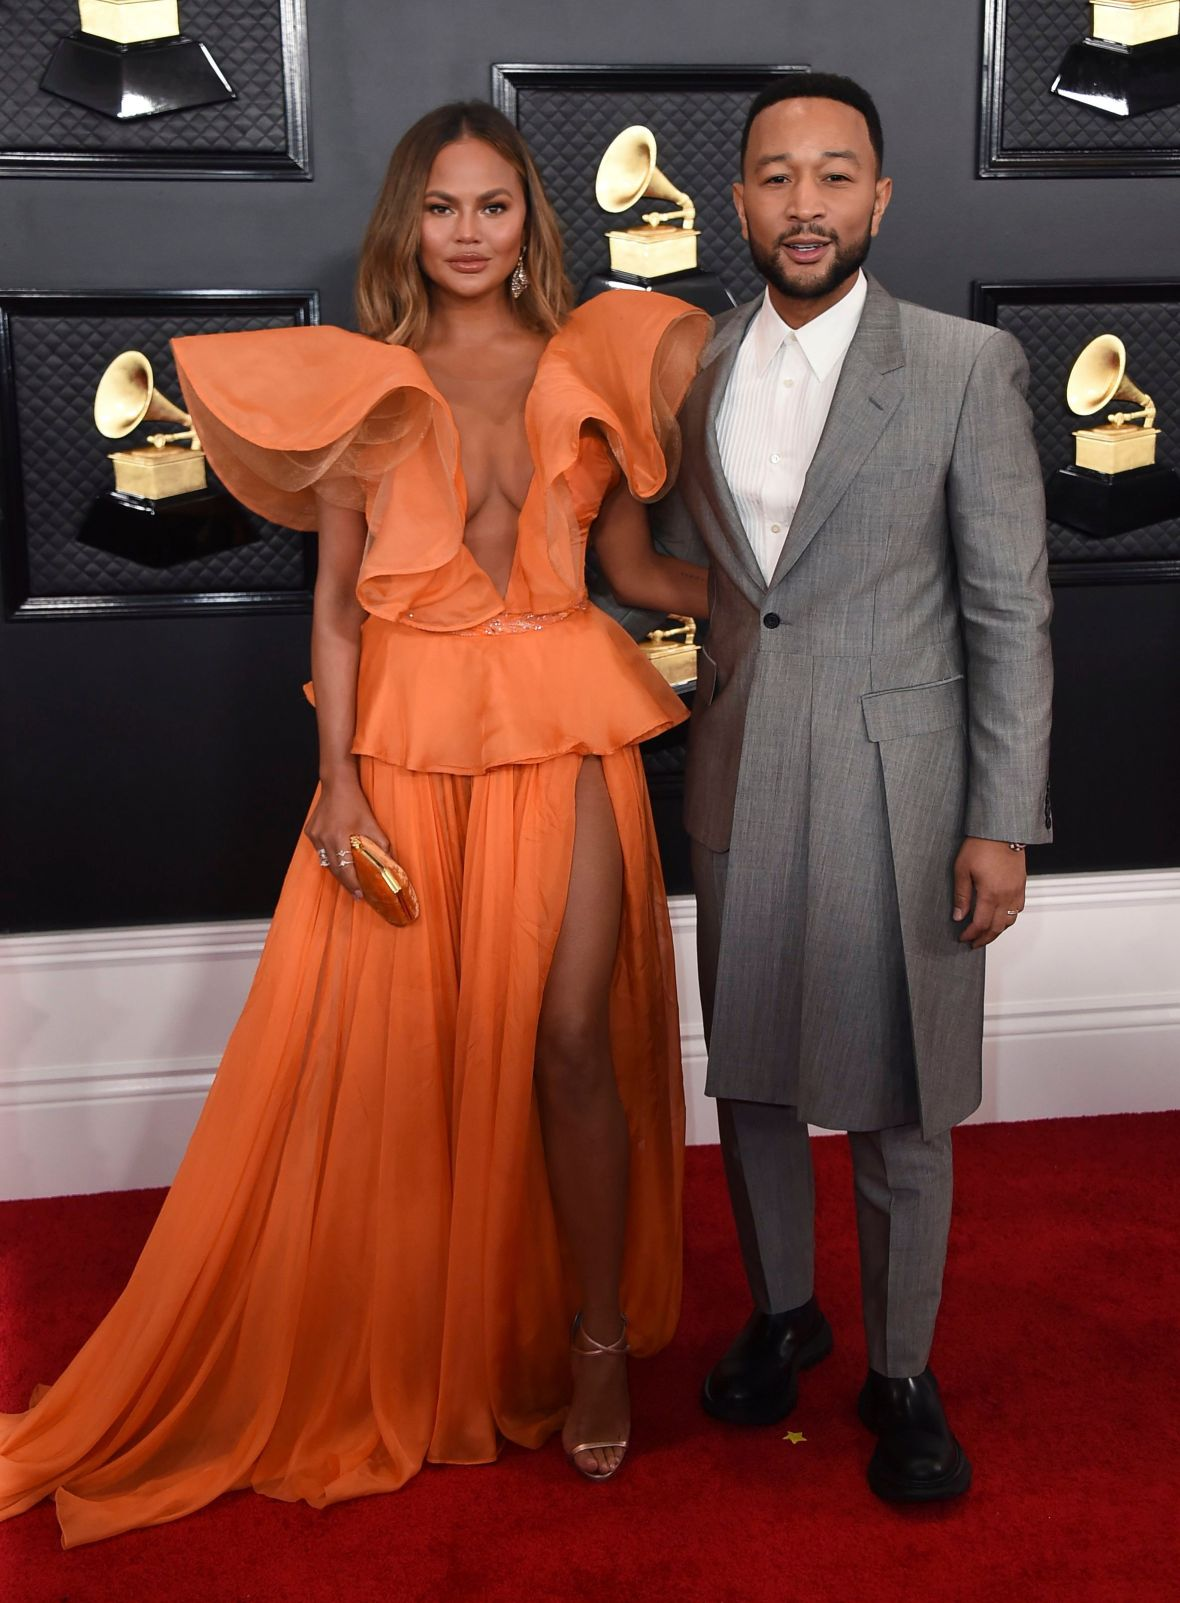 Chrissy Teigen and John Legend on 2020 Grammys Red Carpet